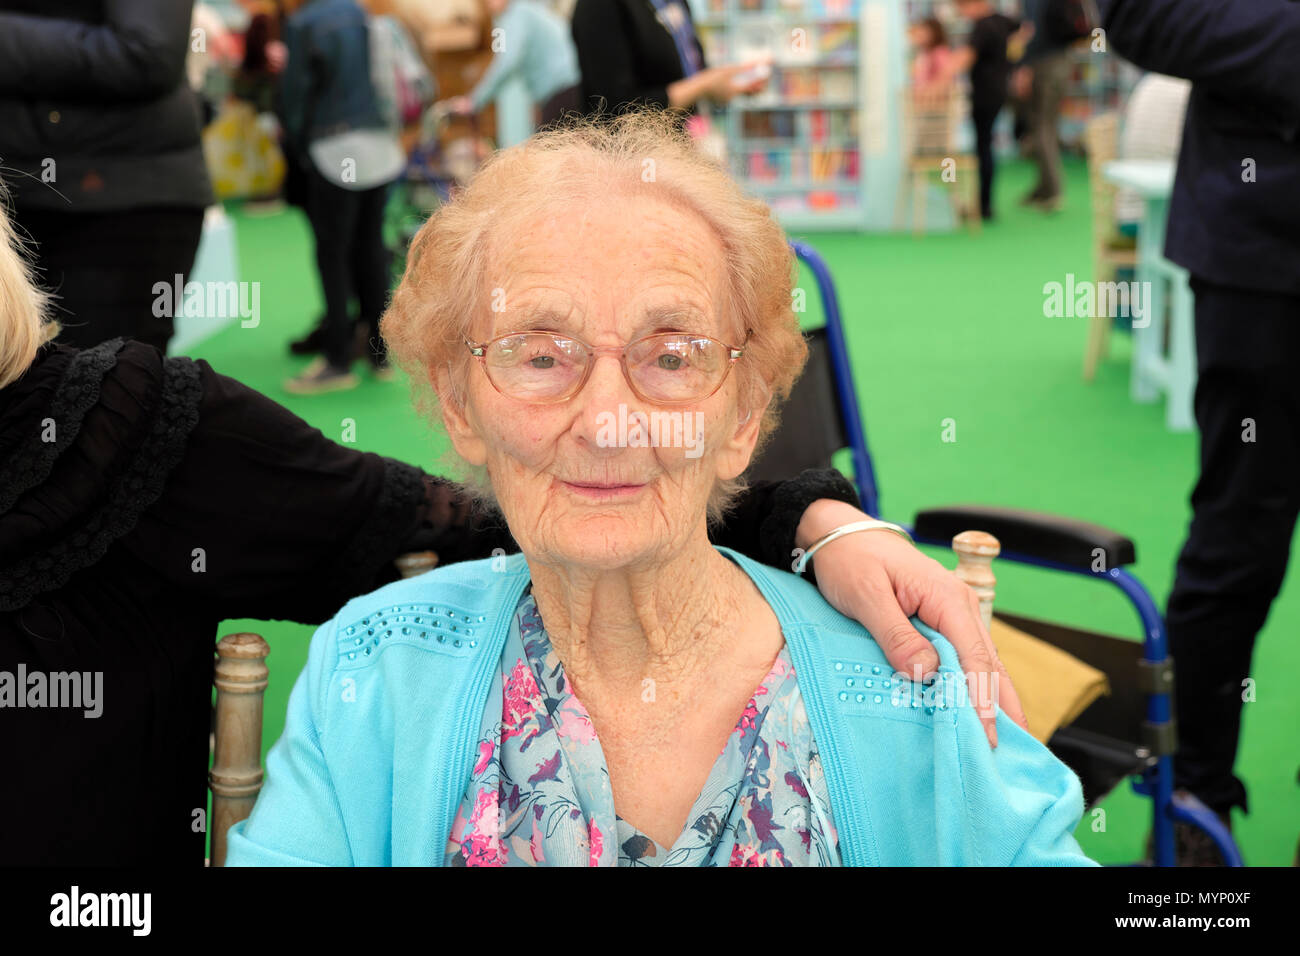 Welsh centenarian Helena Jones from Brecon featured in Tessa Dunlop book 'The Century Girls' in the Hay Festival bookstore Wales UK   KATHY DEWITT - Stock Image